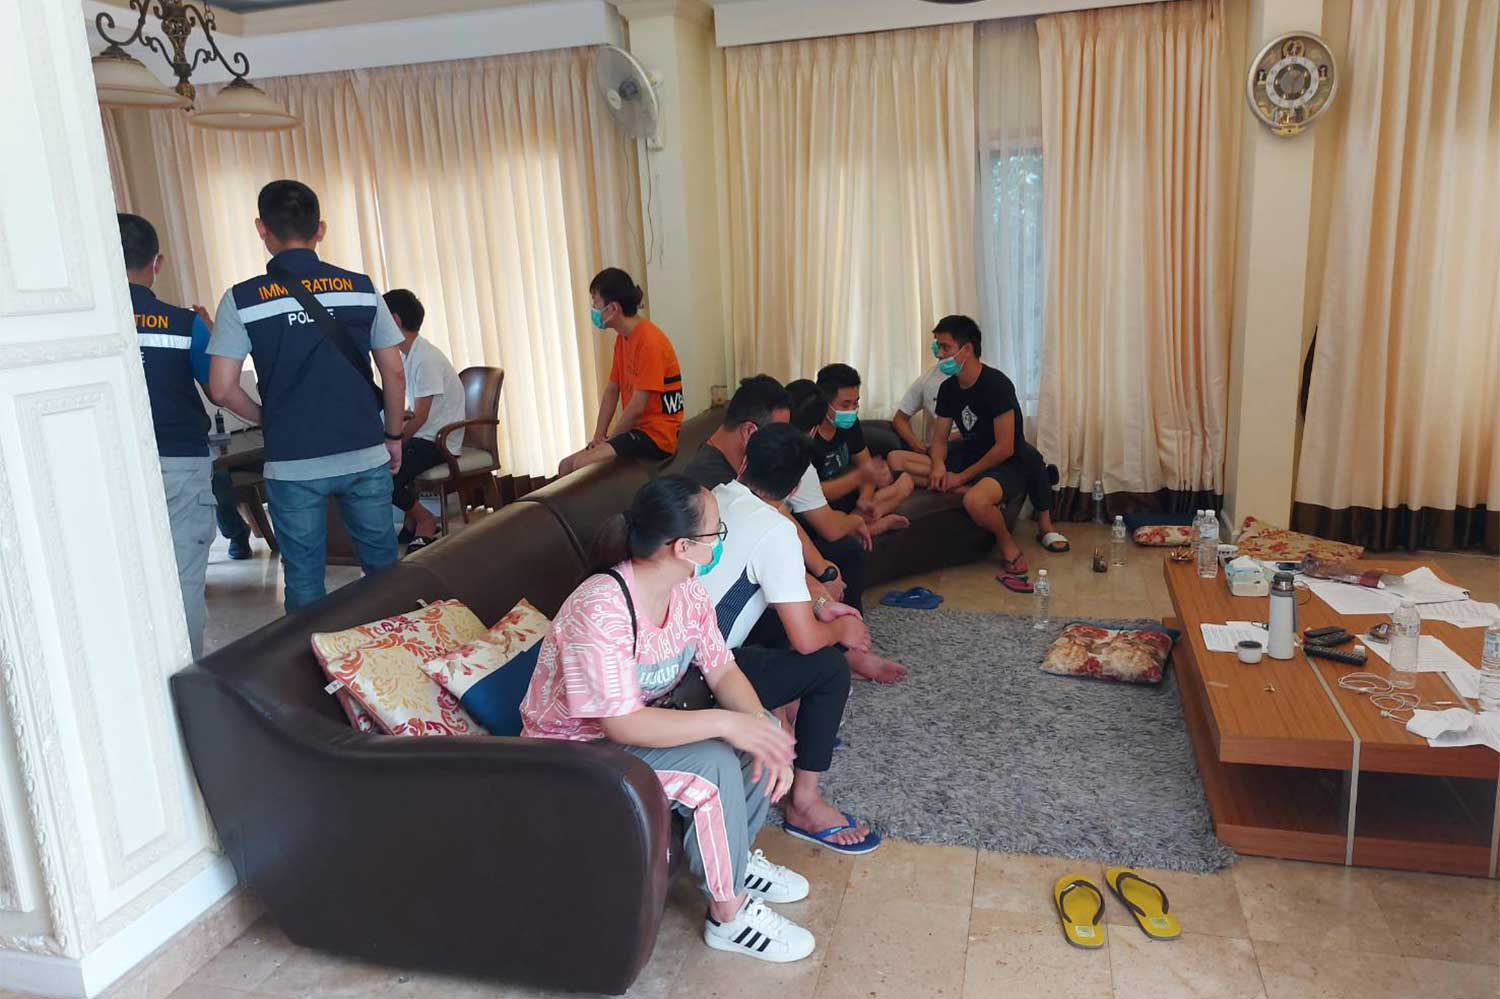 Nineteen Chinese nationals, both men and women, are arrested for illegal entry during a police raid on two houses in Chiang Mai on Thursday. (Photo: Panumet Tanraksa)